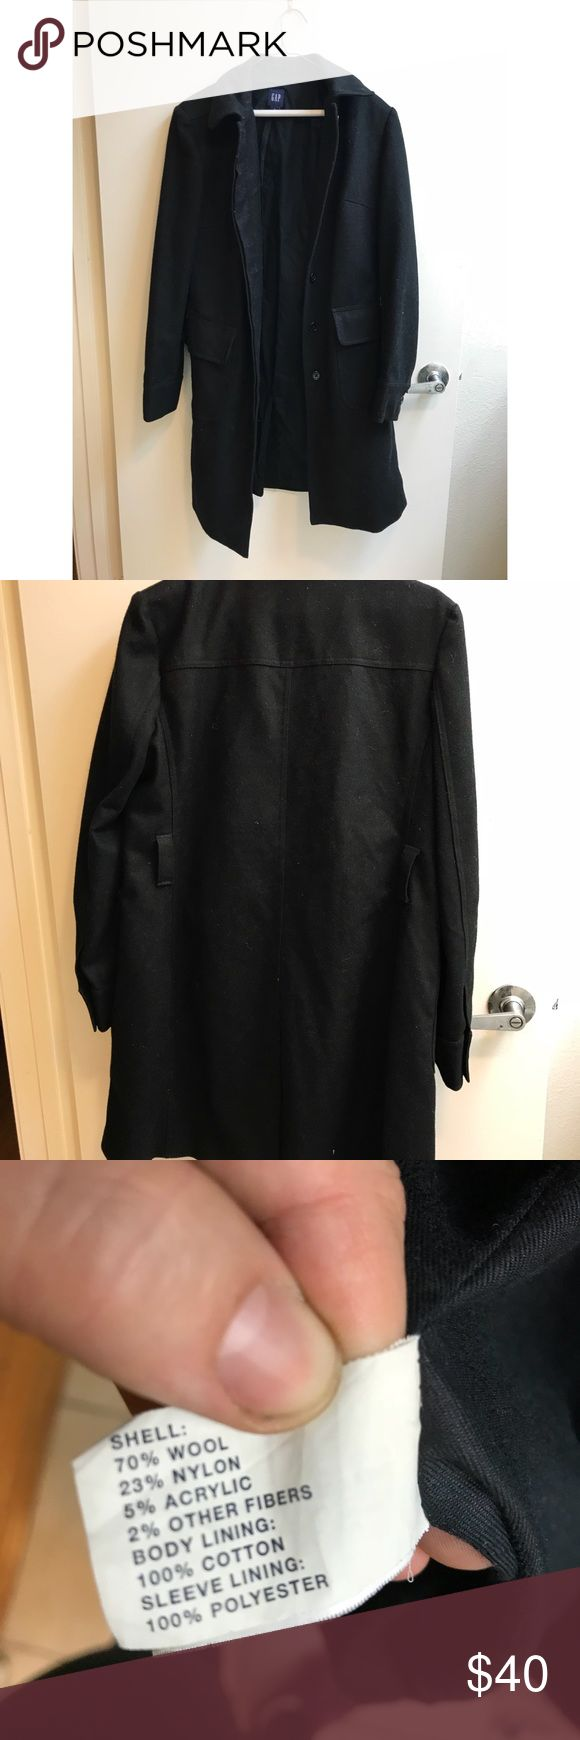 Gap Men's Wool Trench Coat L Sophisticated men's trench coat from the Gap in size L. The shell is a wool blend and the lining is 100% cotton. It has flap pockets and button closures.   Good used condition. The only noticeable issue is that it's missing the belt for the belt loops. You could easily use a different belt (it wouldn't be hard to find a matching one) or forego the belt all together. GAP Jackets & Coats Trench Coats